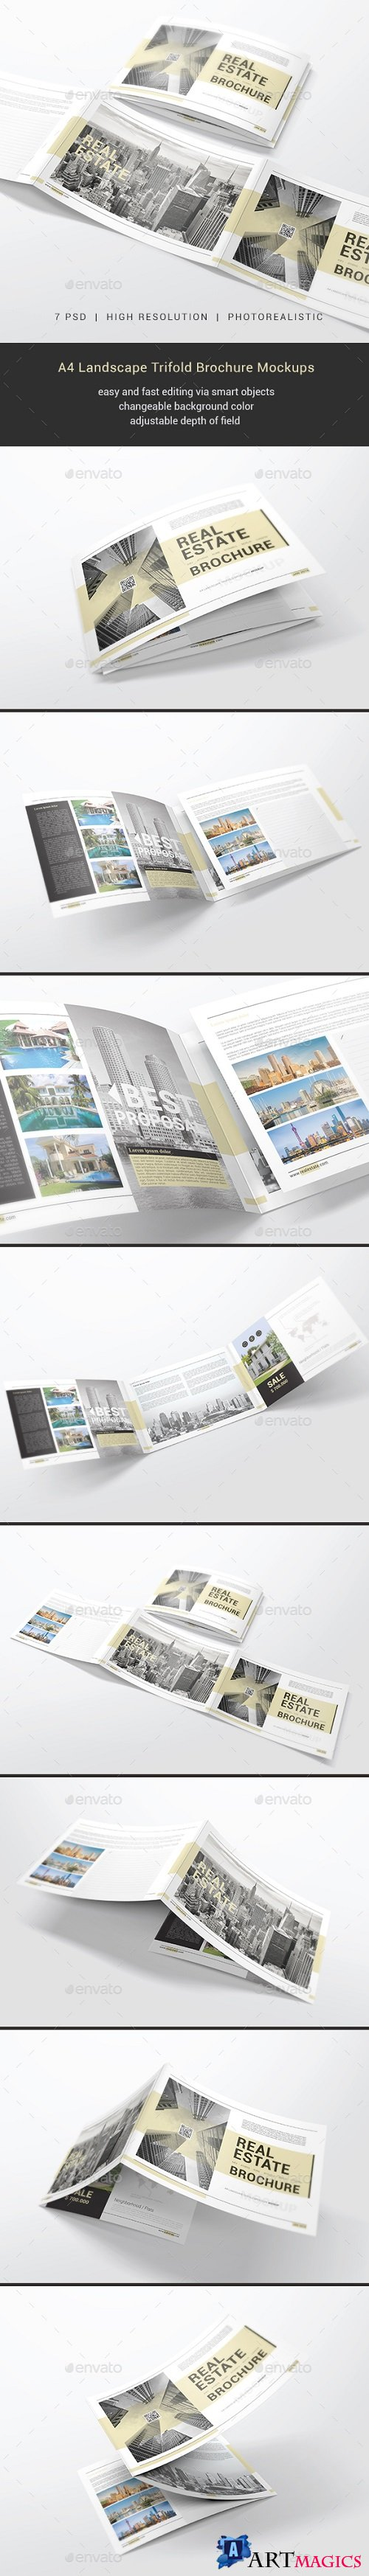 A4 Trifold Brochure Mockups 21168451